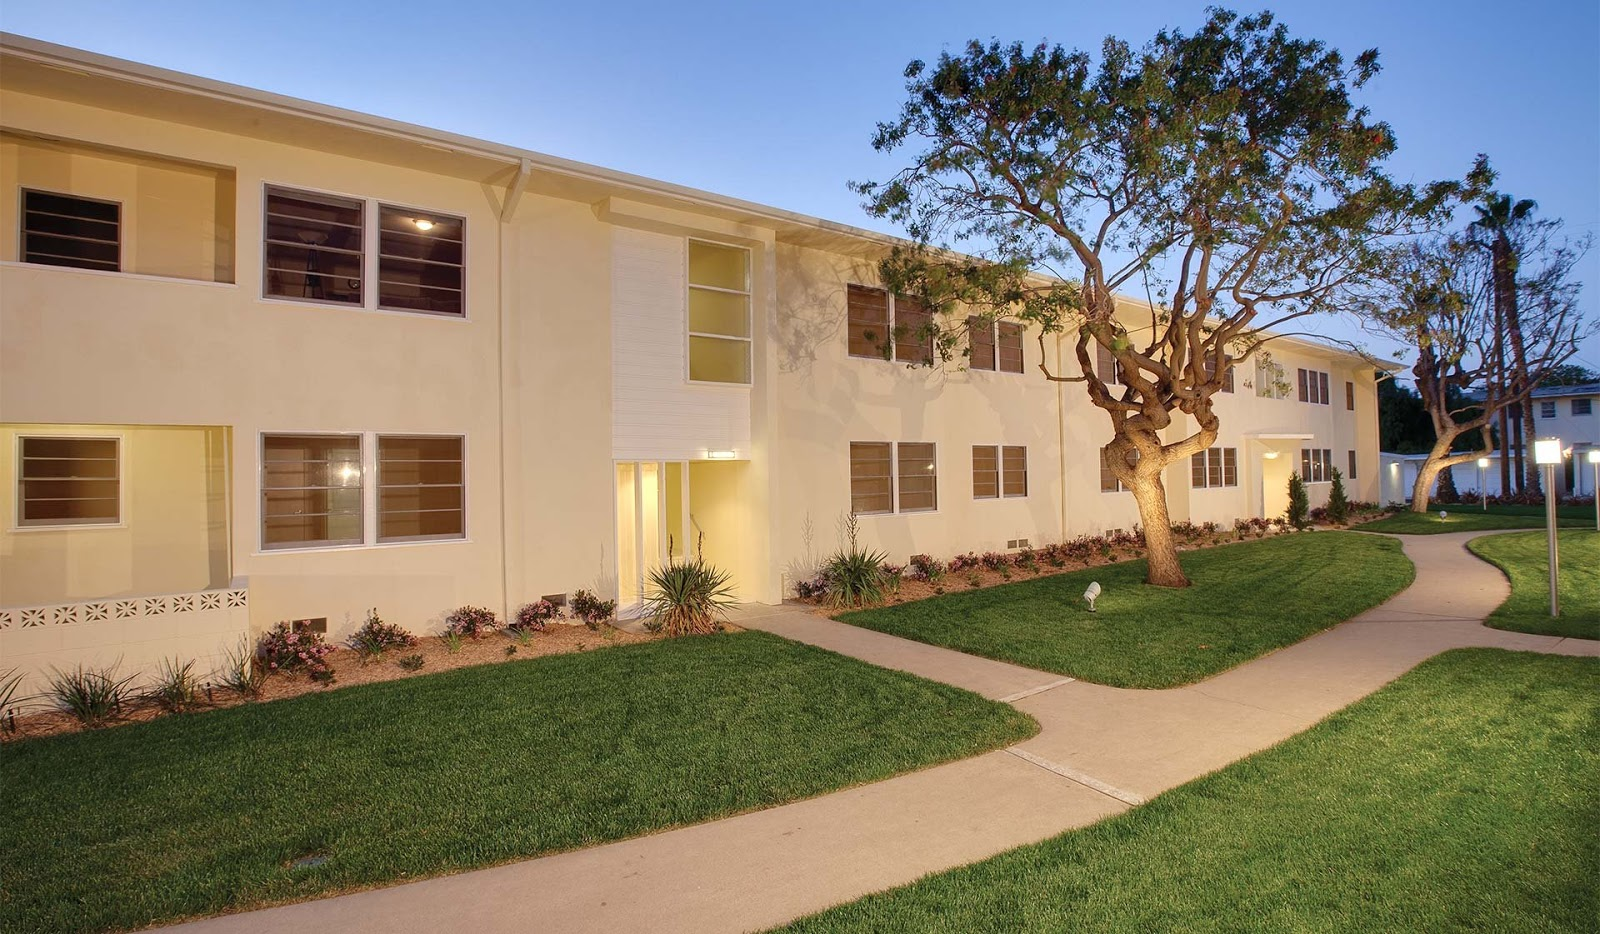 walk moody cypress in lincoln score ca apartments photo